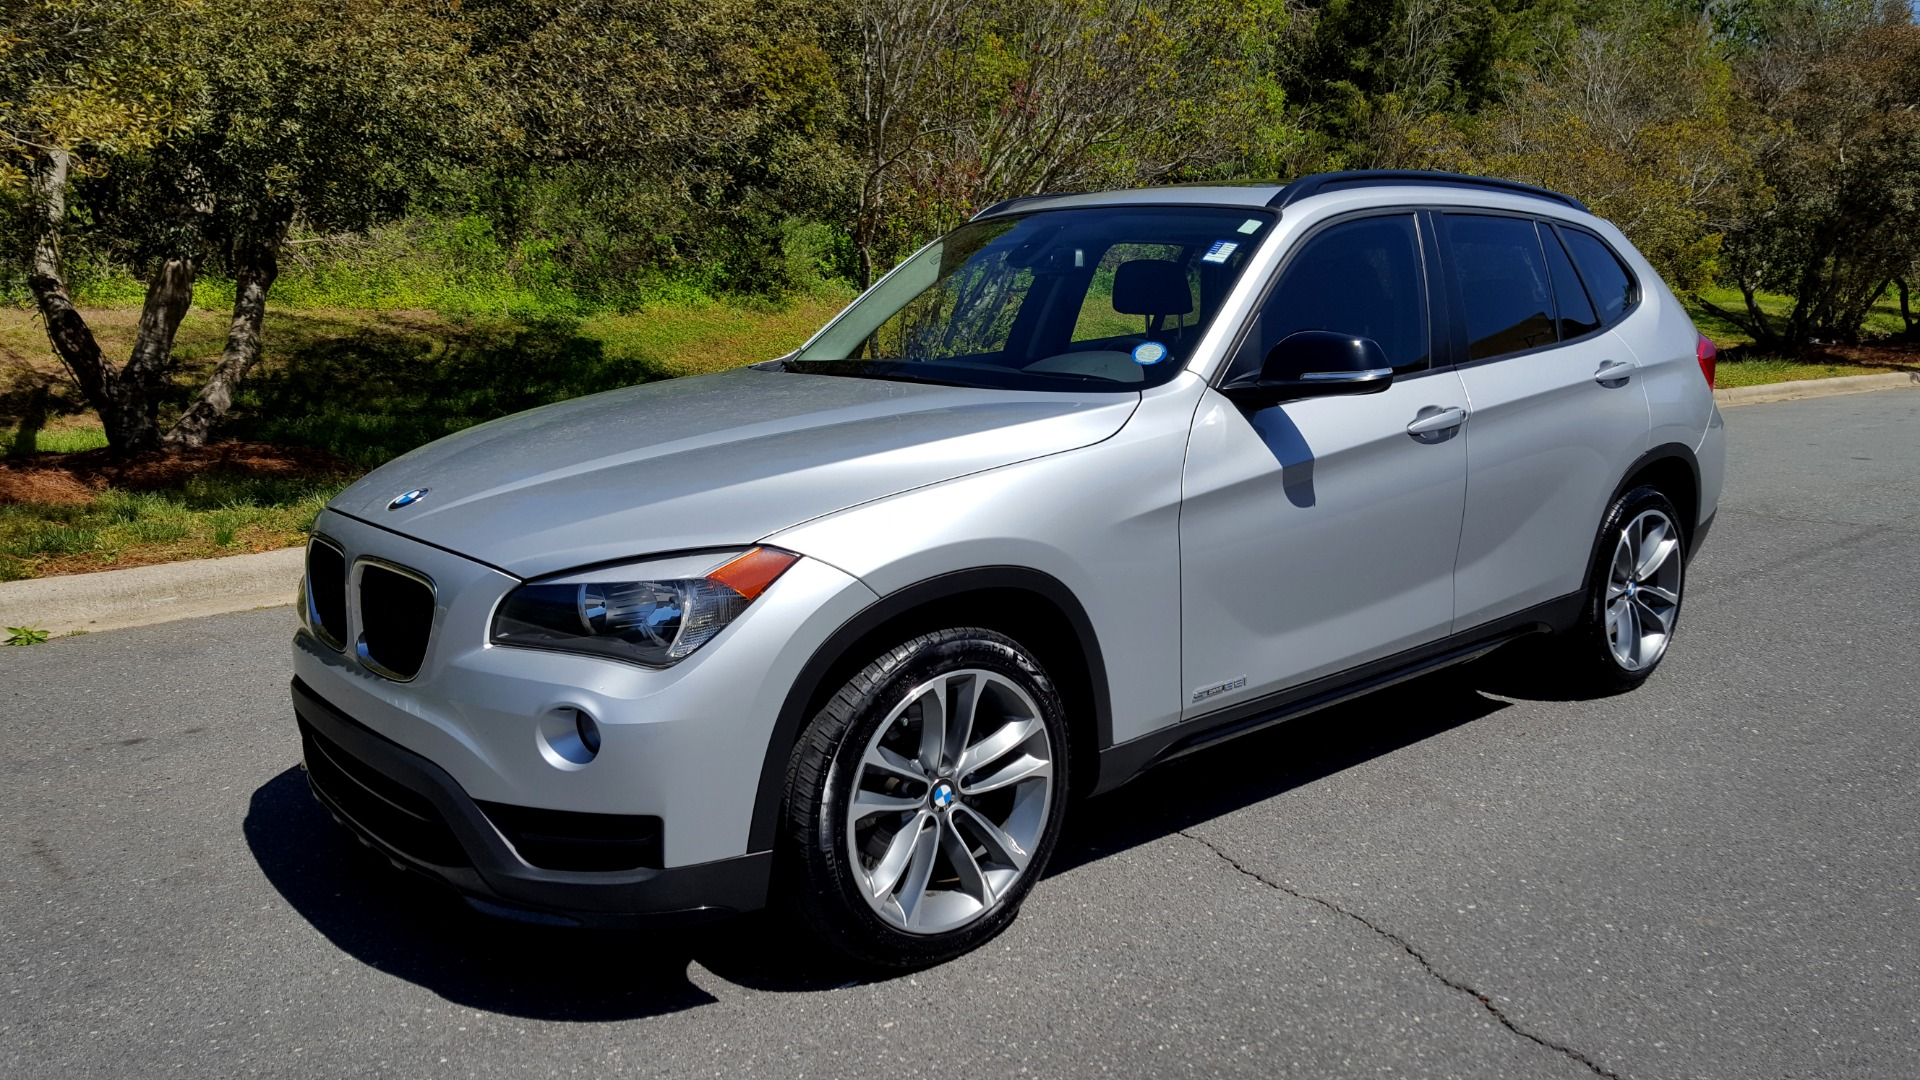 Used 2015 BMW X1 SDRIVE28I / SPORT LINE / PANO-ROOF / HTD STS / DUAL-ZONE CLIMATE for sale Sold at Formula Imports in Charlotte NC 28227 1